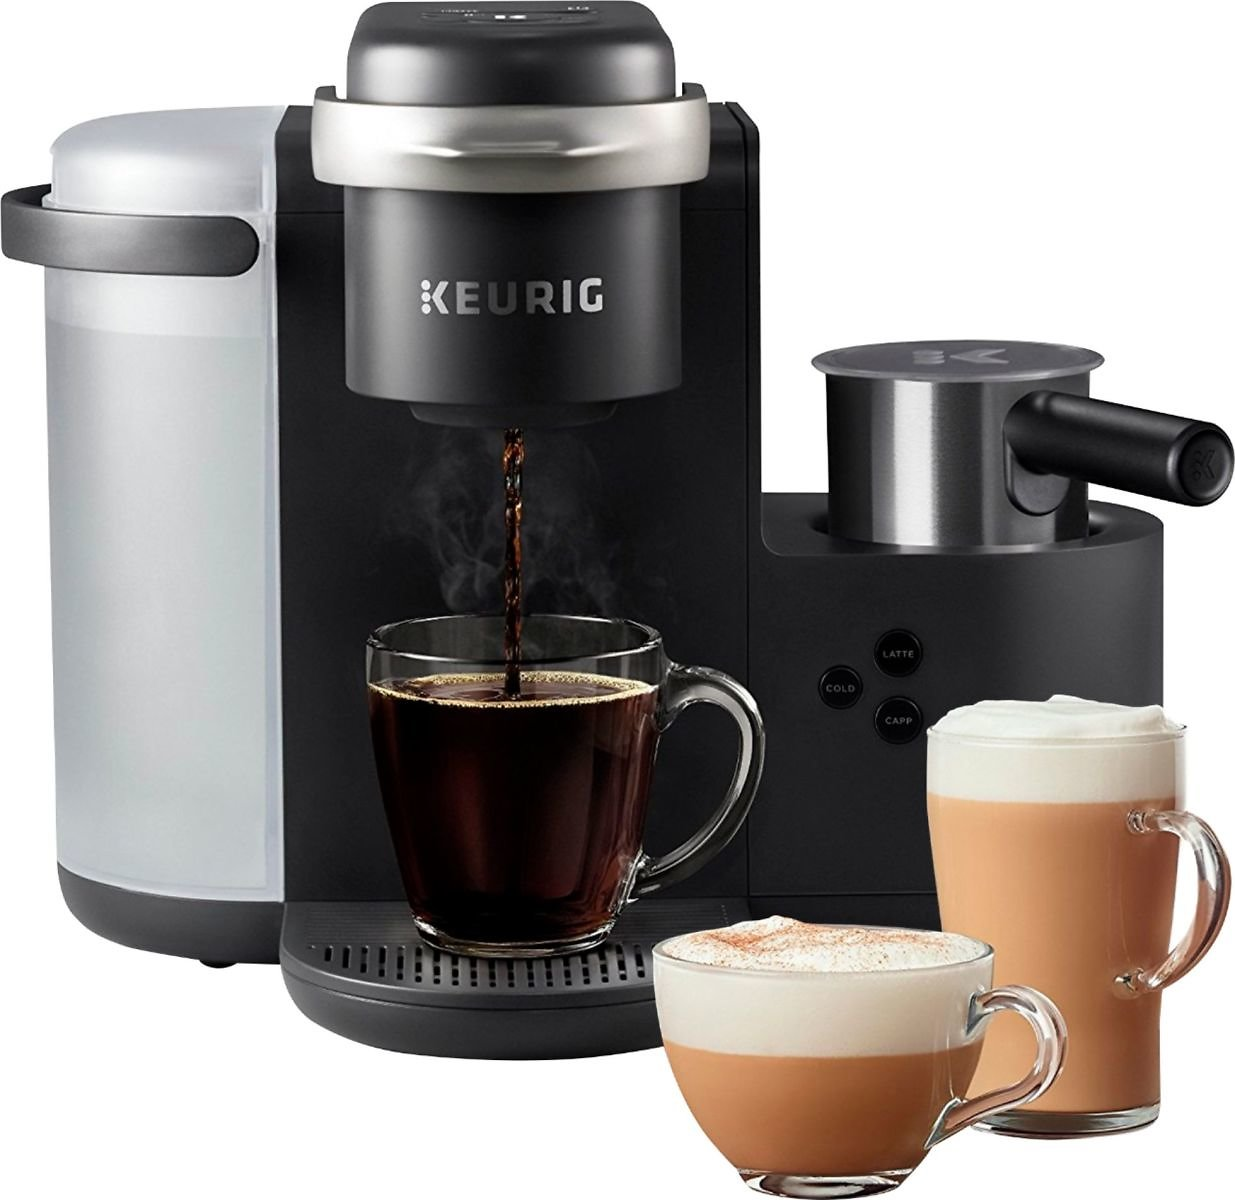 Keurig K-Cafe Single Serve K-Cup Coffee Maker, Today Only!